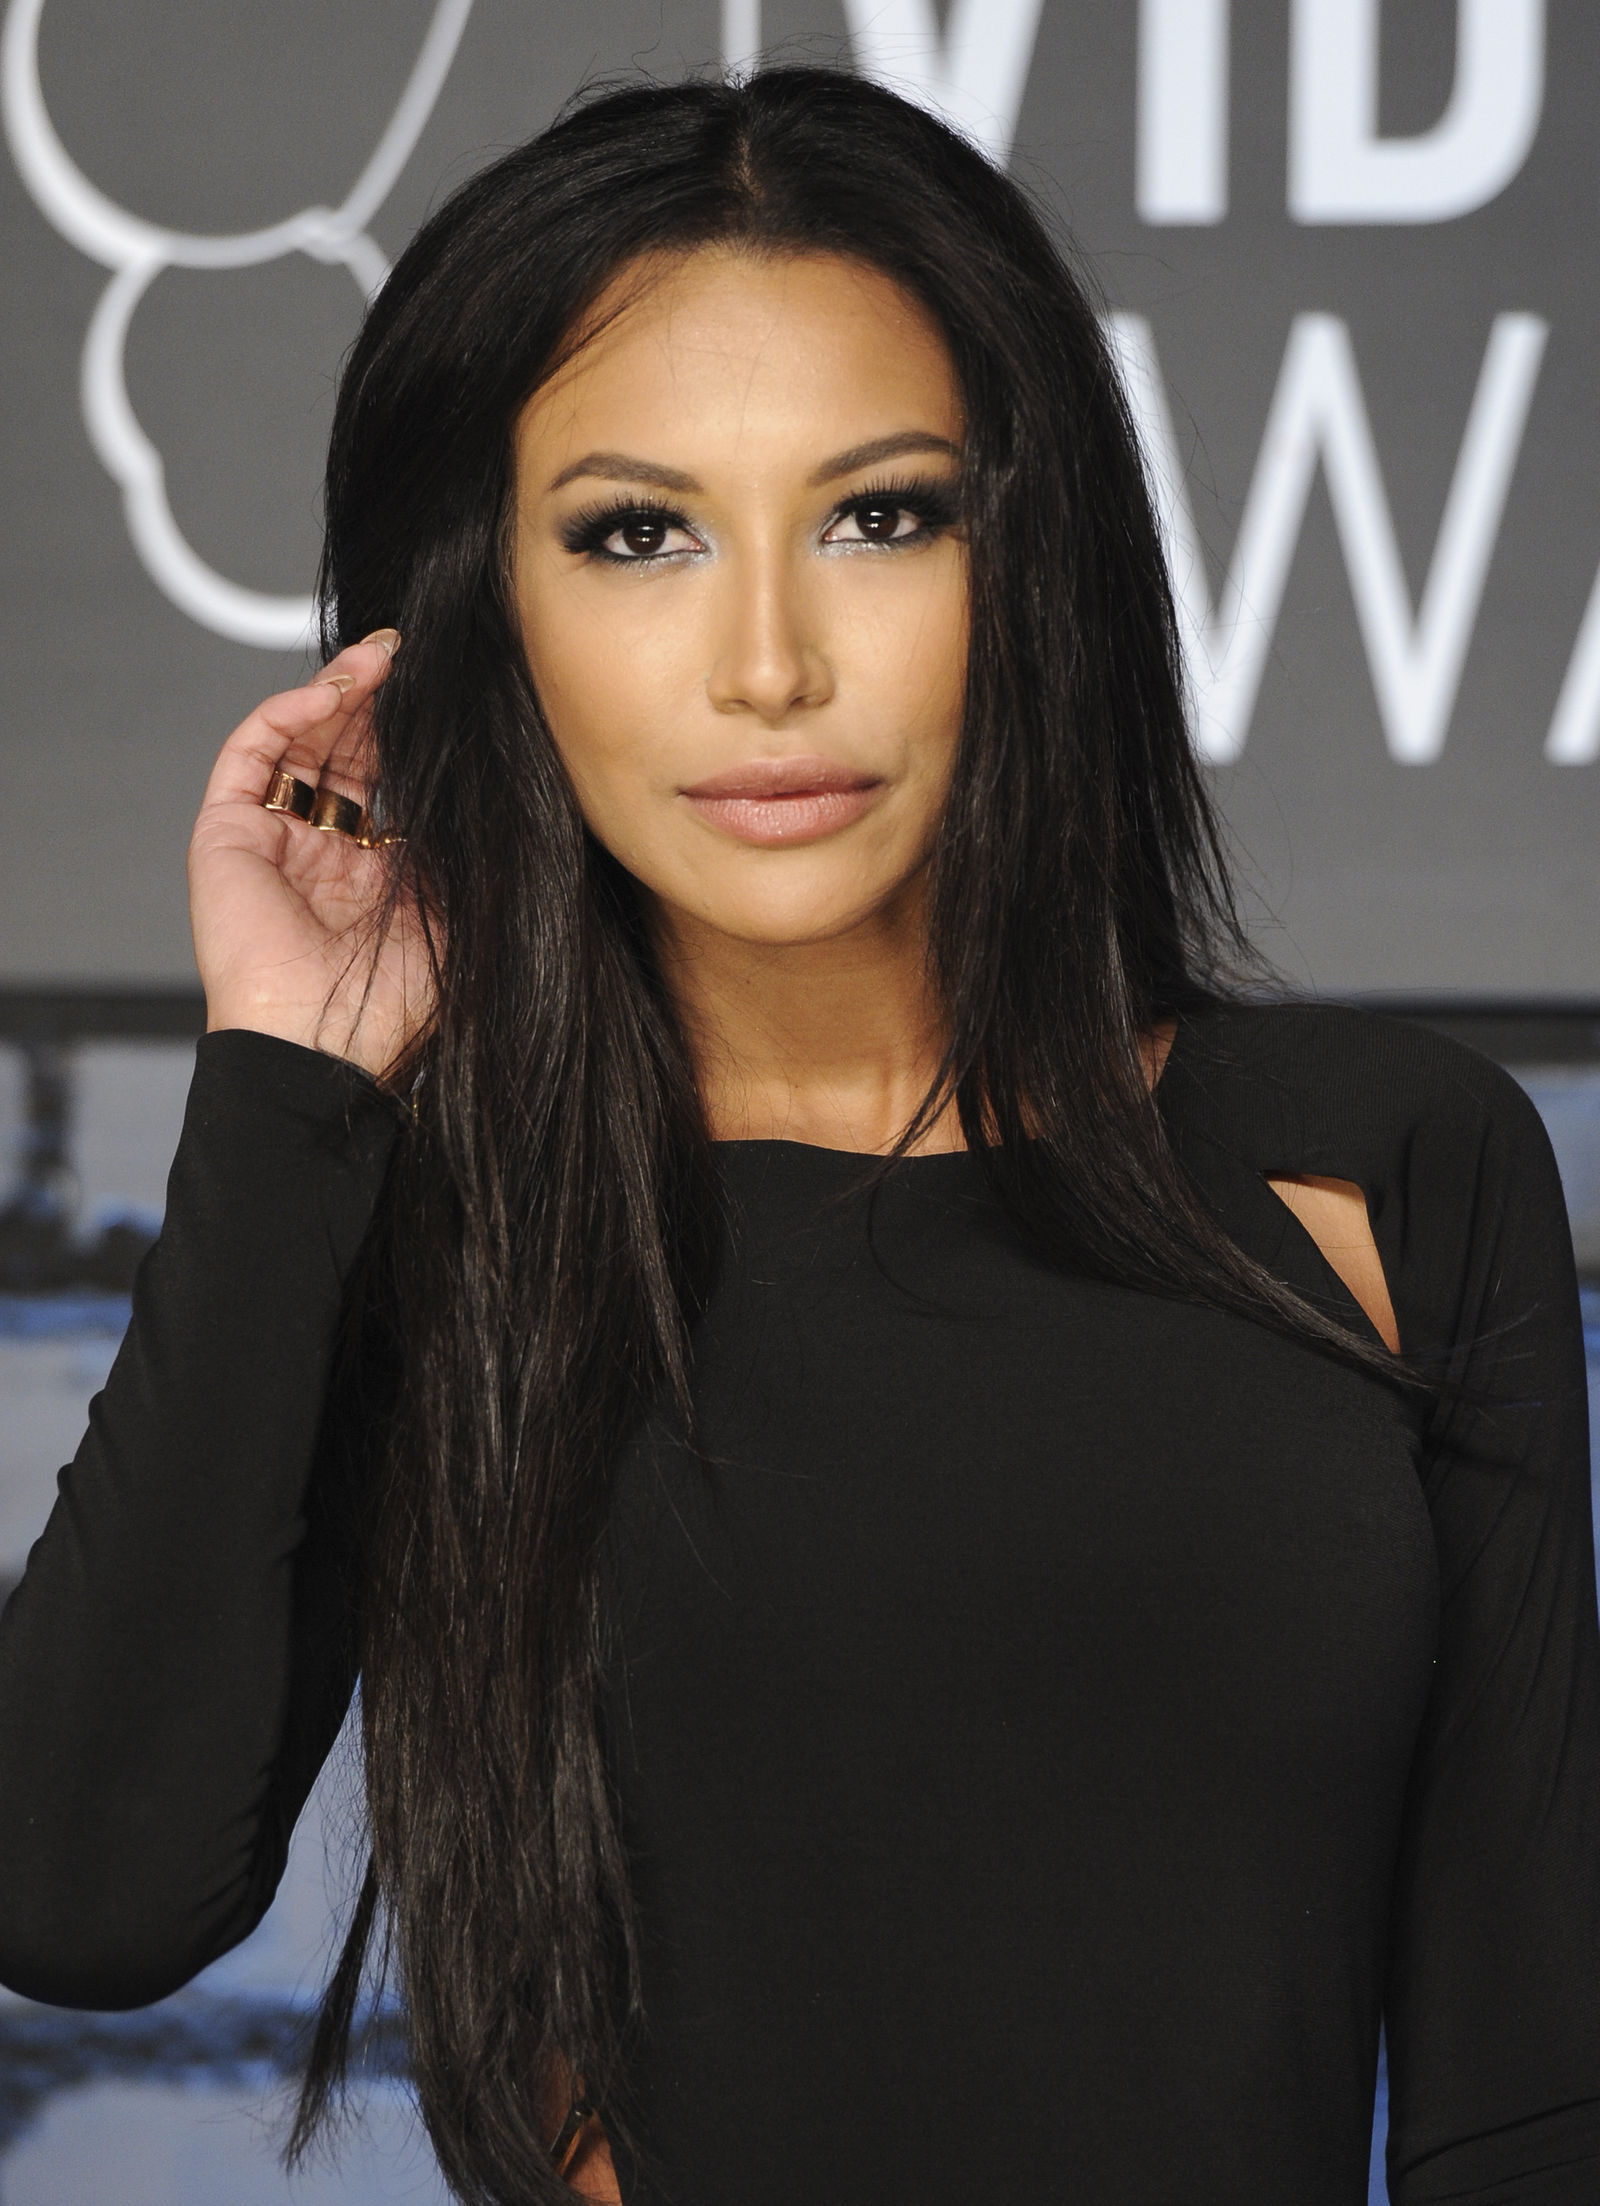 A new report from police has an account from Naya Rivera's son about what Rivera's final minutes were like before her tragic passing in July.